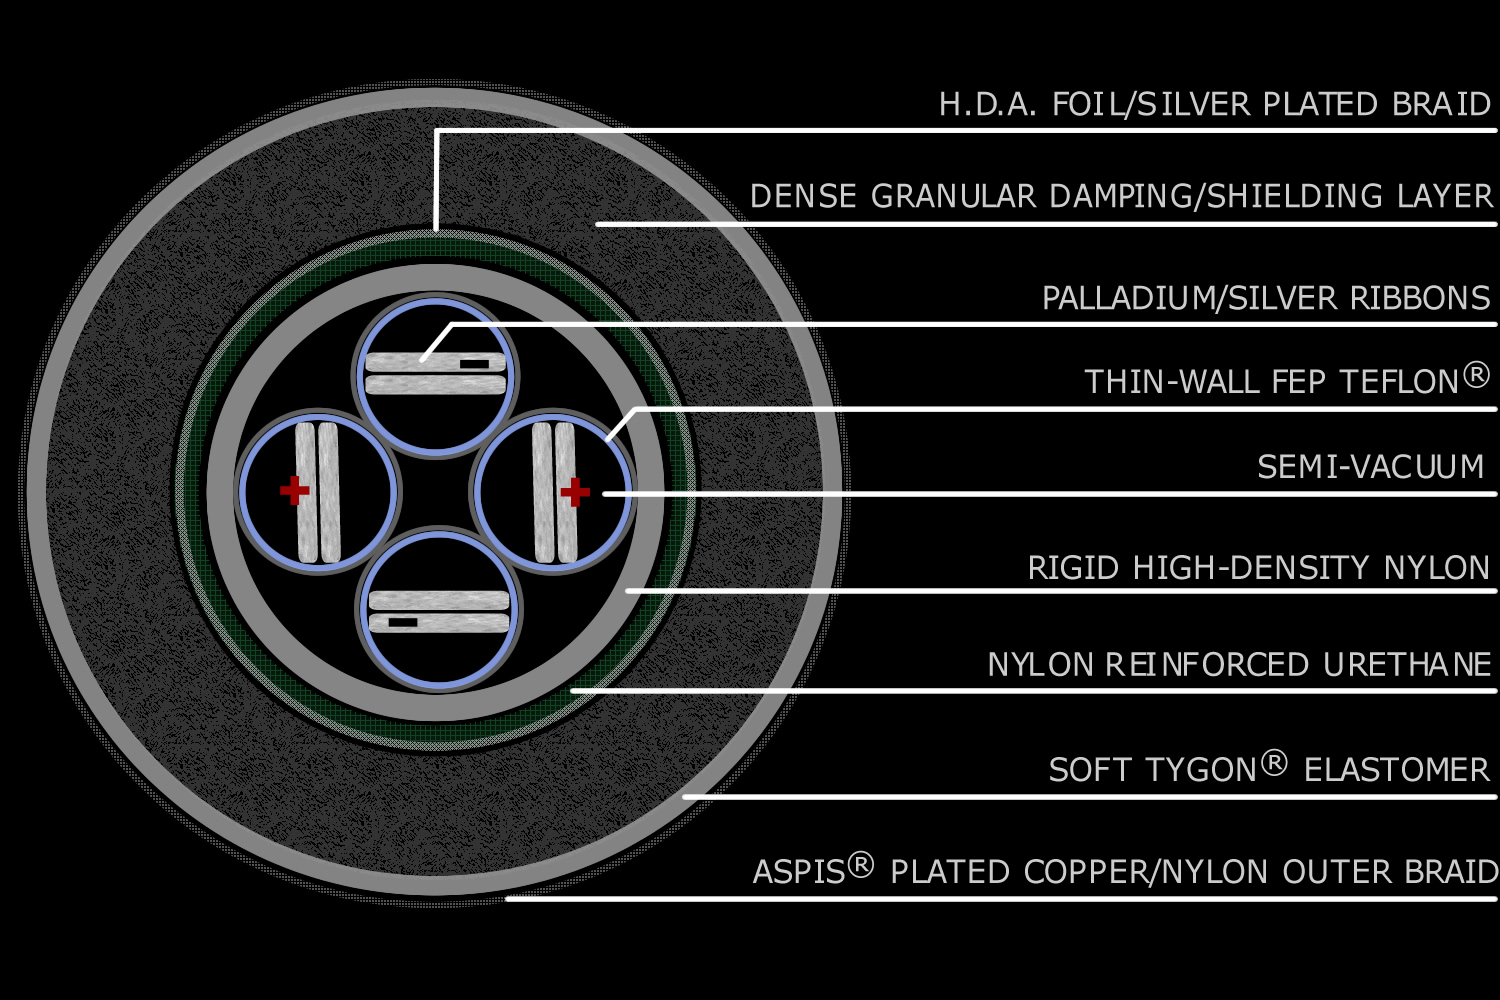 MEDUSA schematic with text